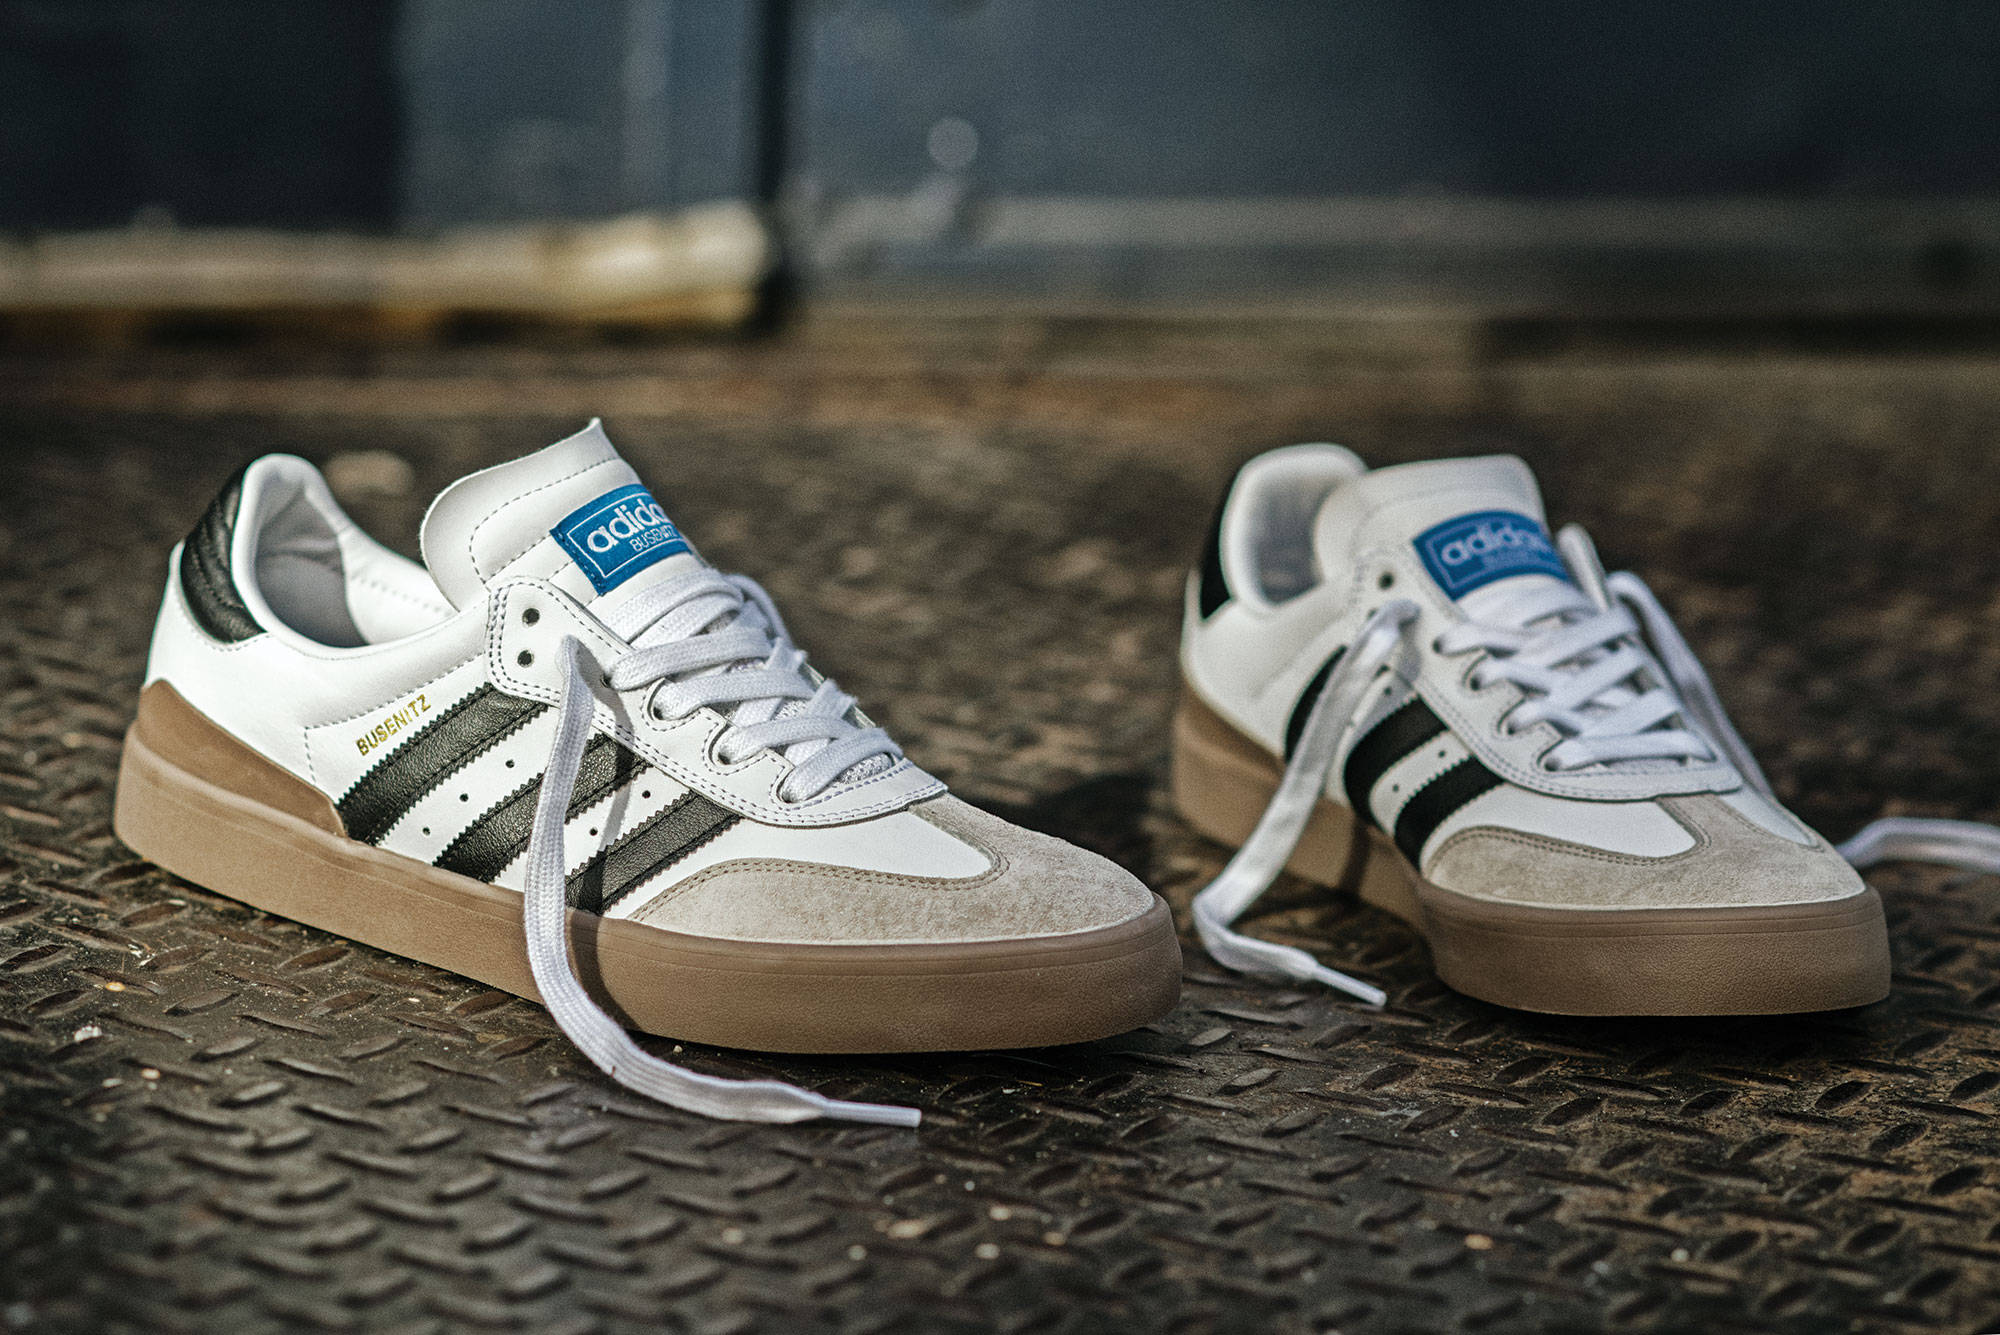 3b3c79e1c0a ADIDAS BUSENITZ VULC RX -- Inspired by the Samba